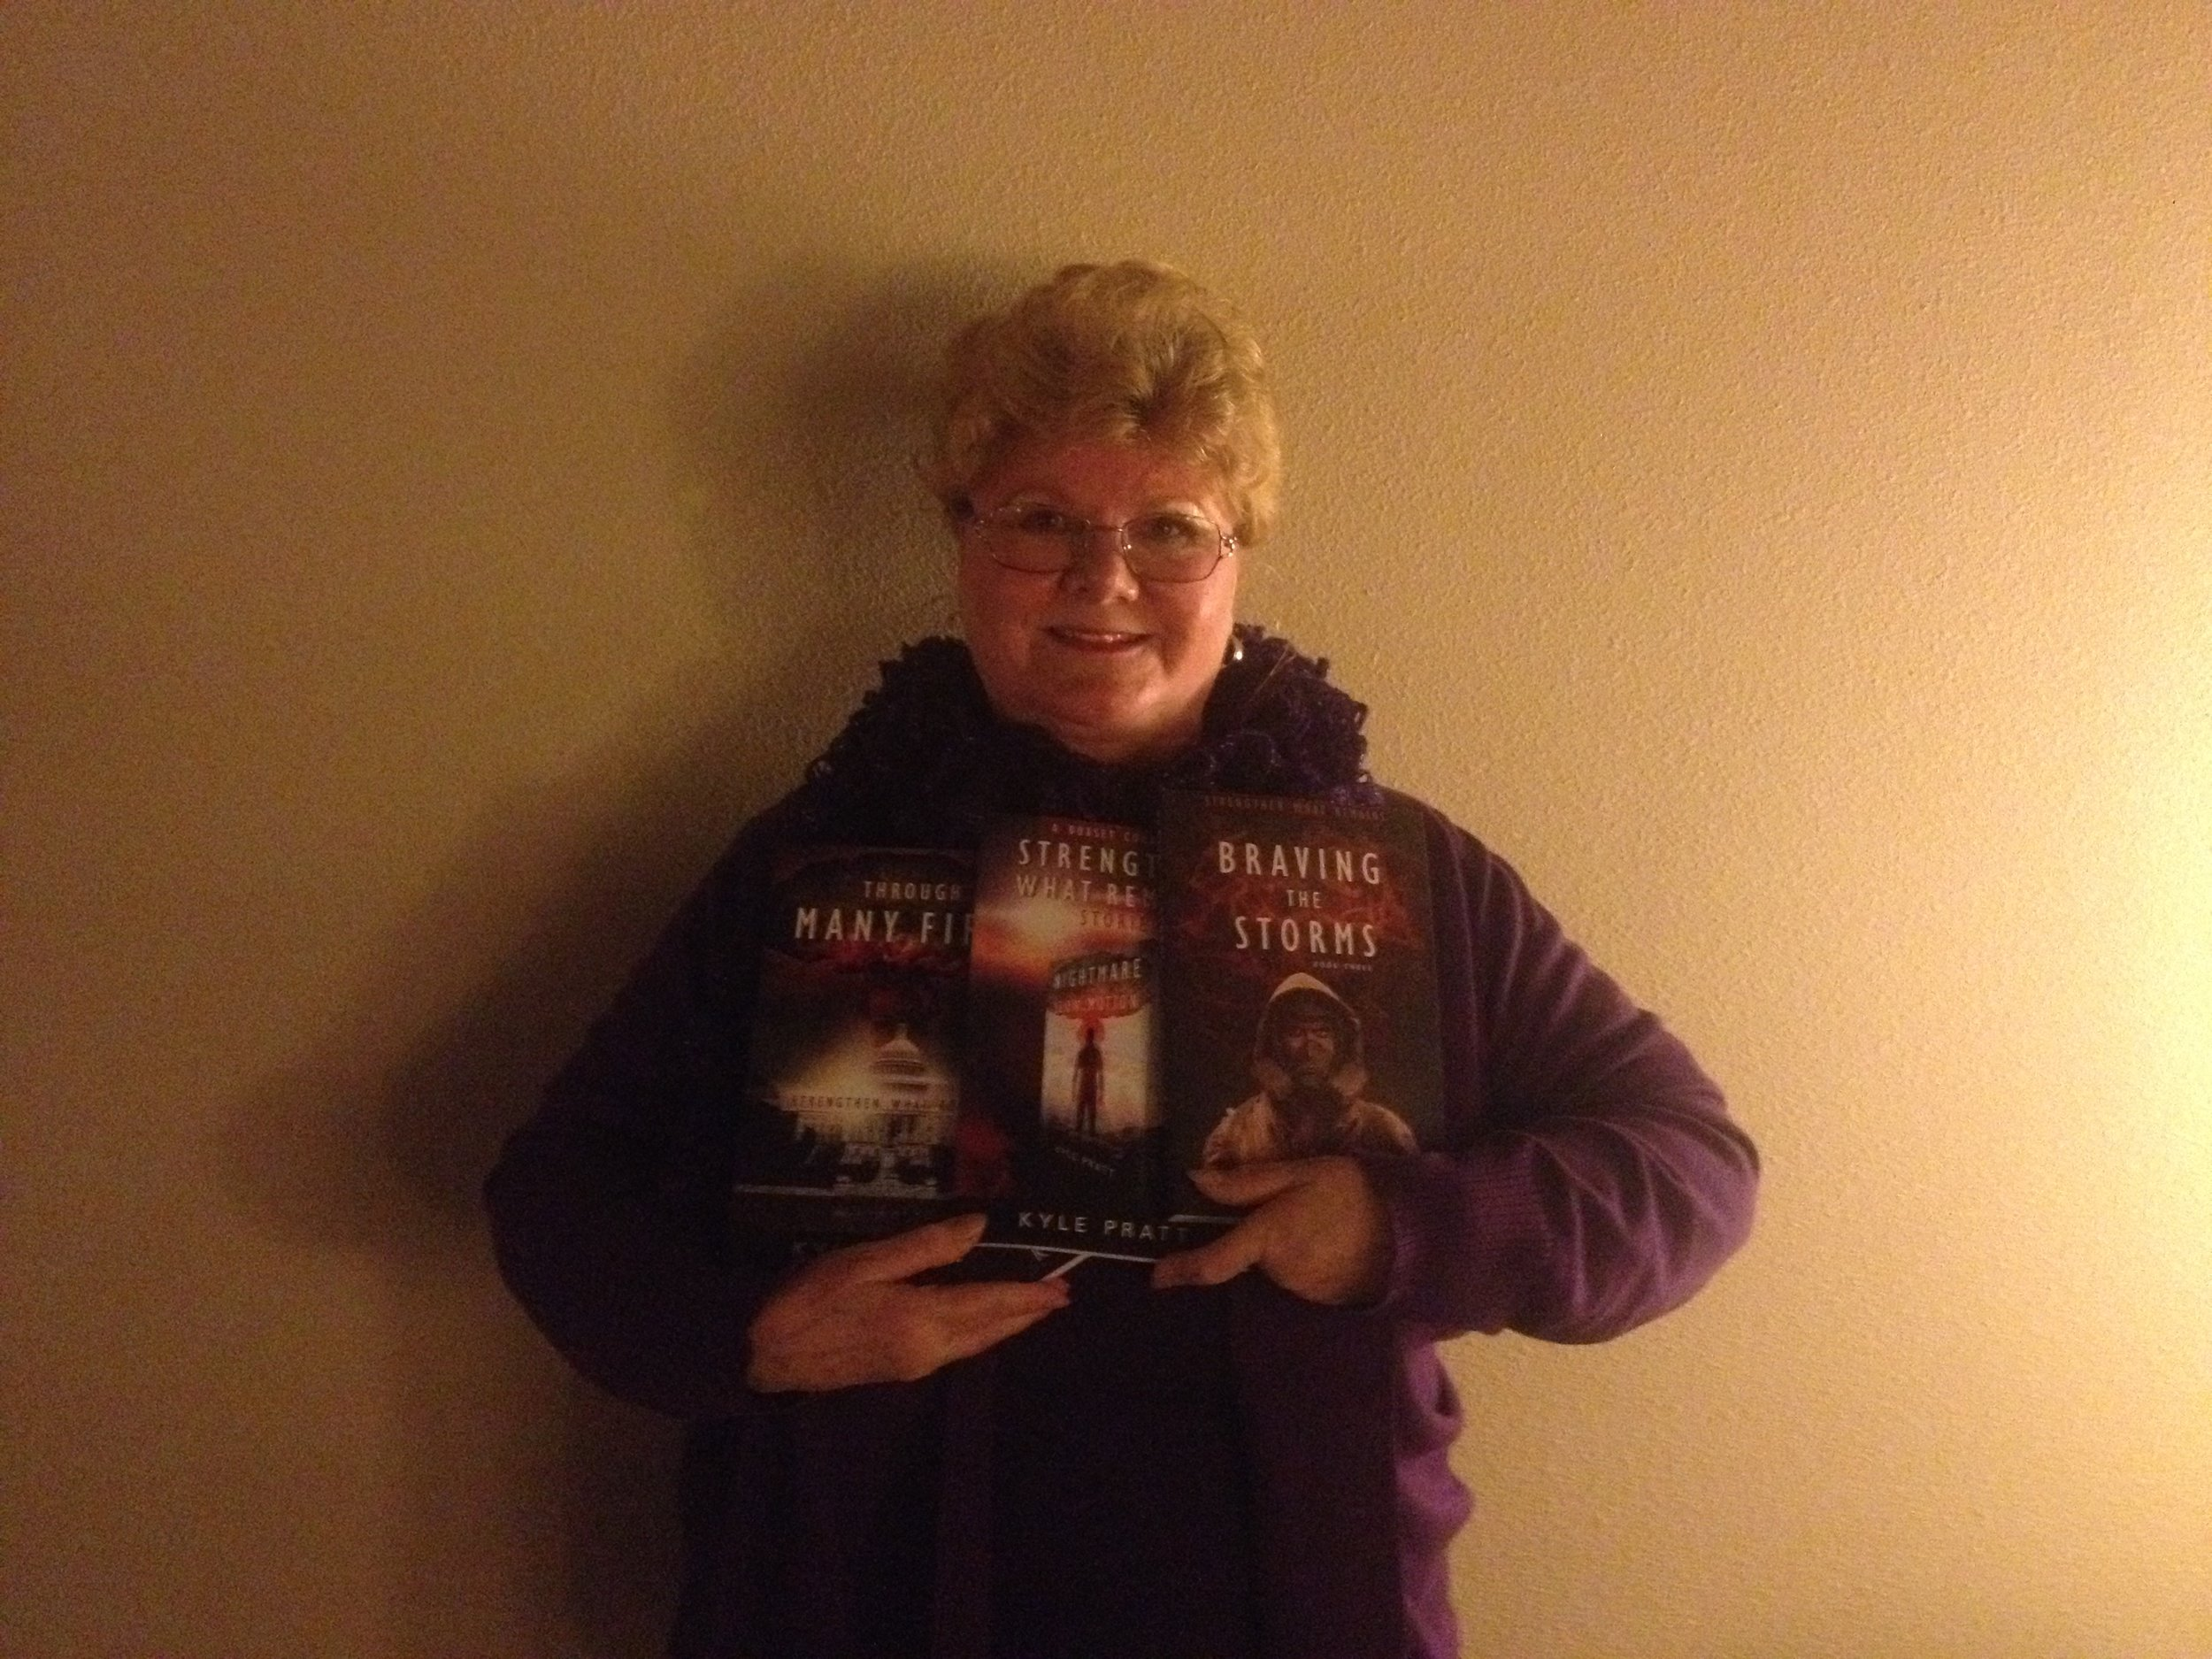 Donna from Pe Ell, Washington State. She's a new fan with copies of  Through Many Fires,  the combo of  Nightmare in Slow Motion  and  The Long Way Home  and, on the end,  Braving the Storms . I'm pretty sure she also has a copy of  A Time to Endure.